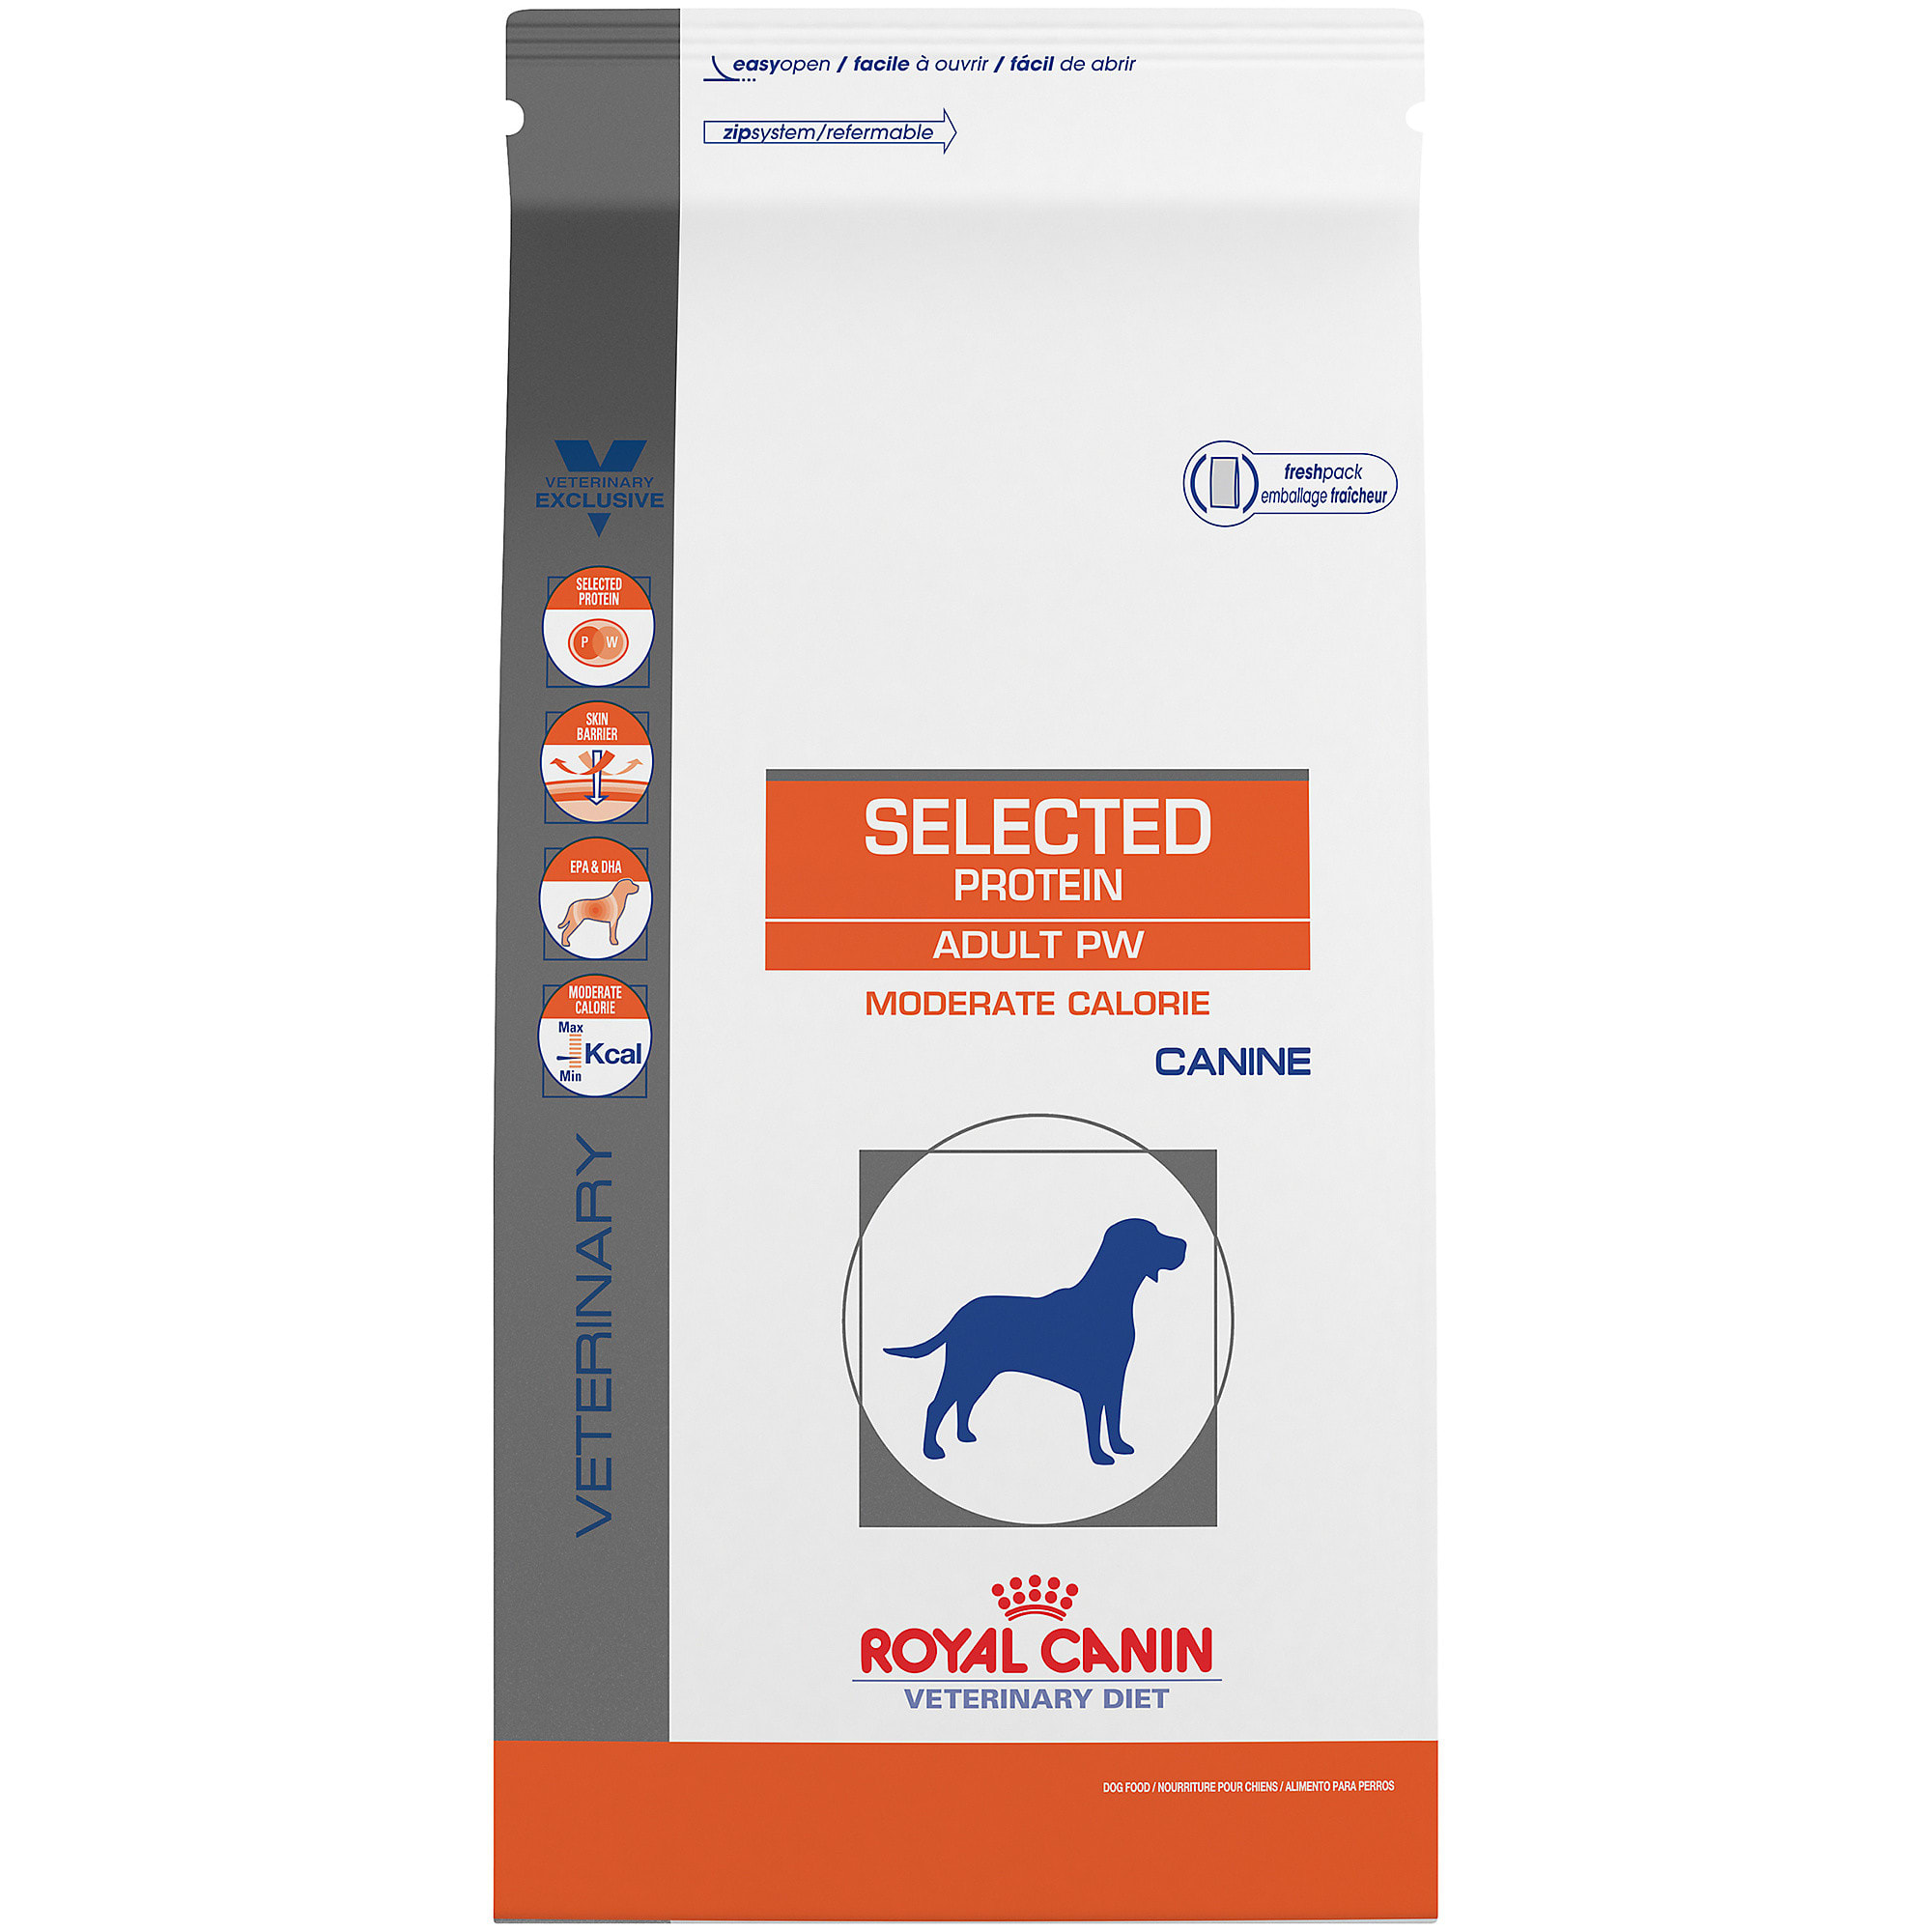 Royal Canin Veterinary Diet Canine Selected Protein Adult PW Moderate Calorie Dry Dog Food, 24.2 lbs.